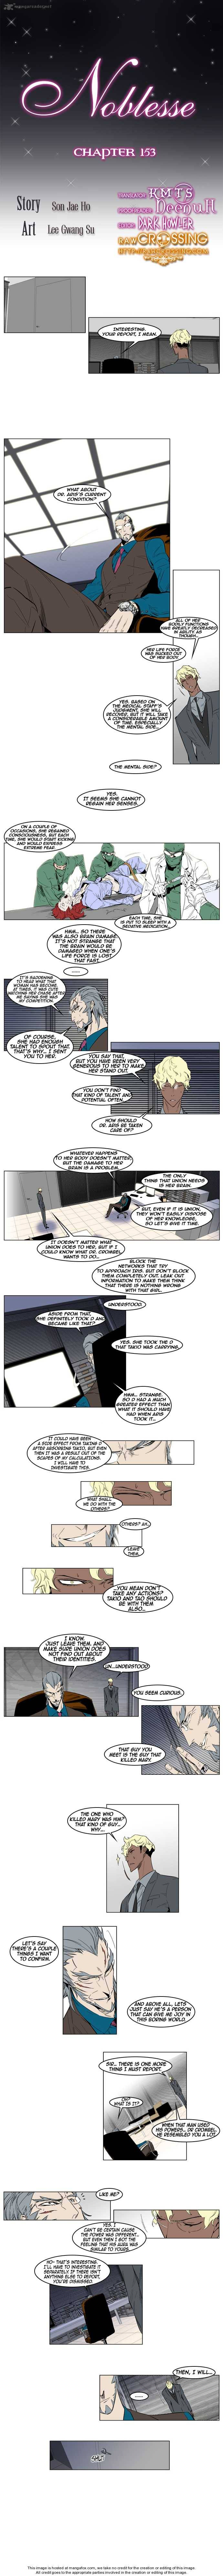 Noblesse Chapter 153 Page 1